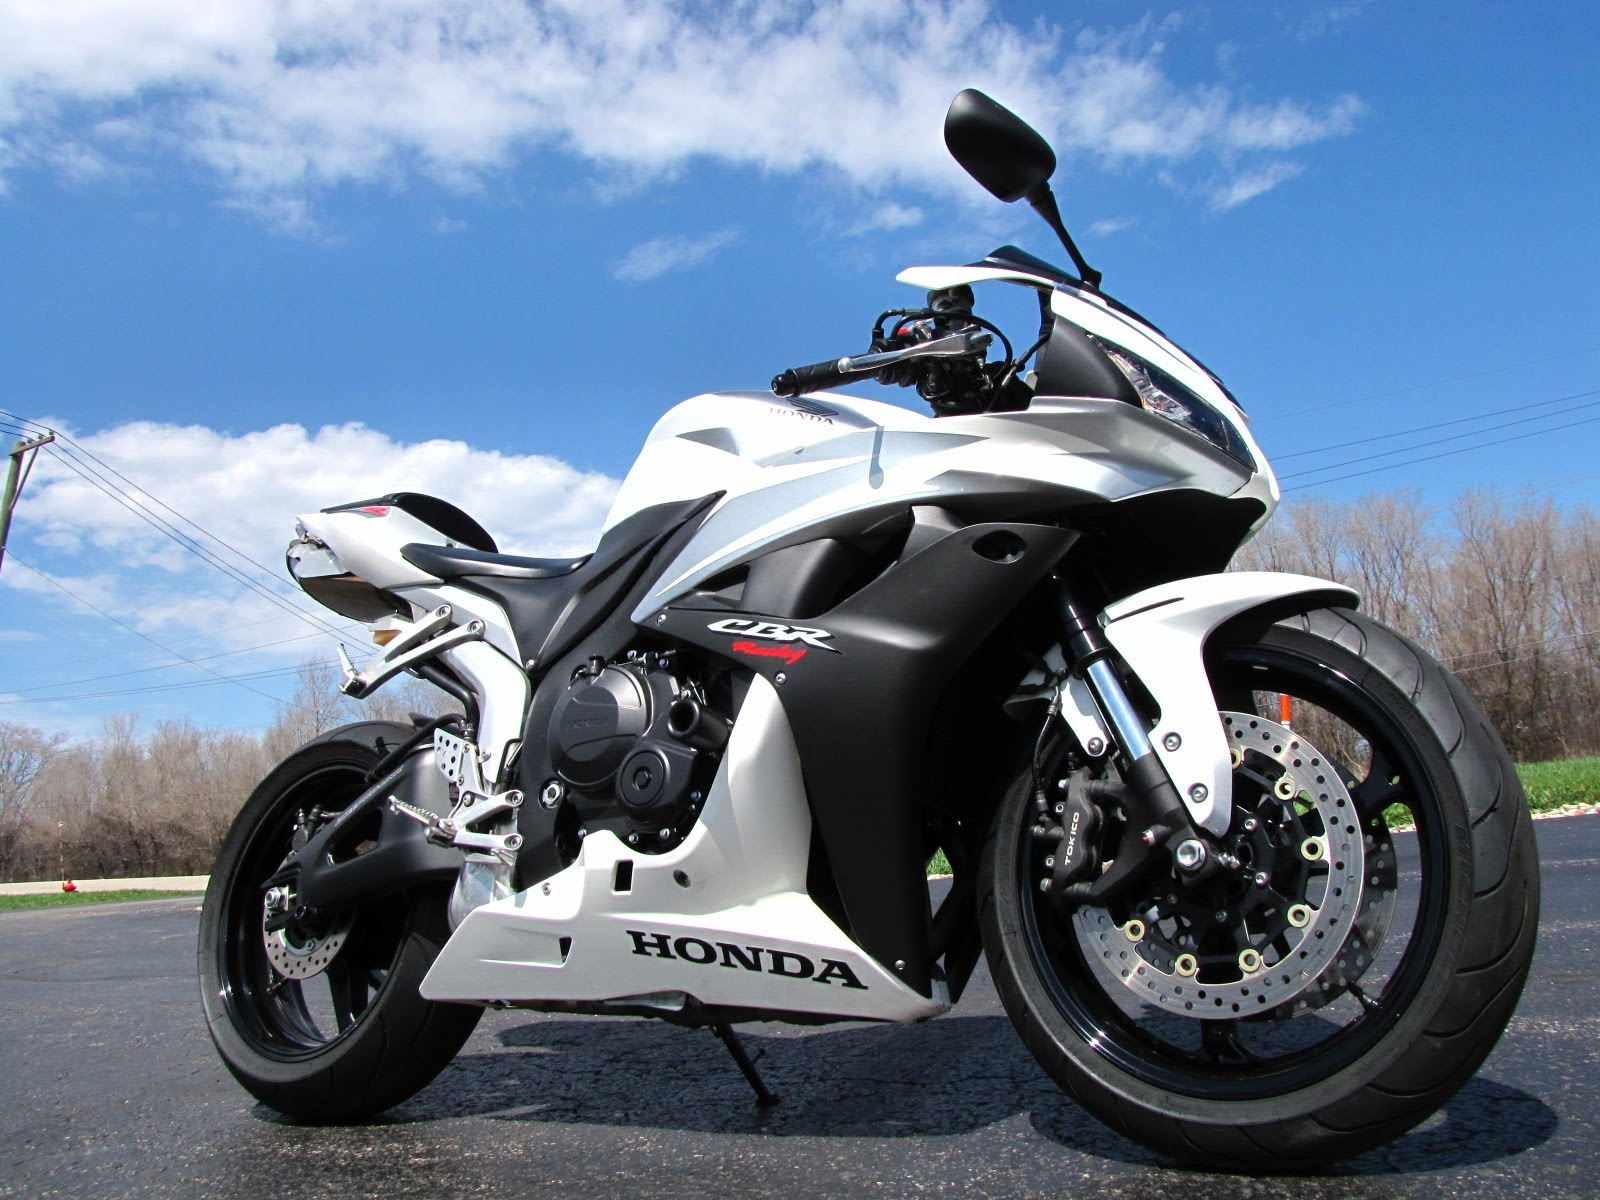 honda cbr600rr wallpaper and background image | 1600x1200 | id